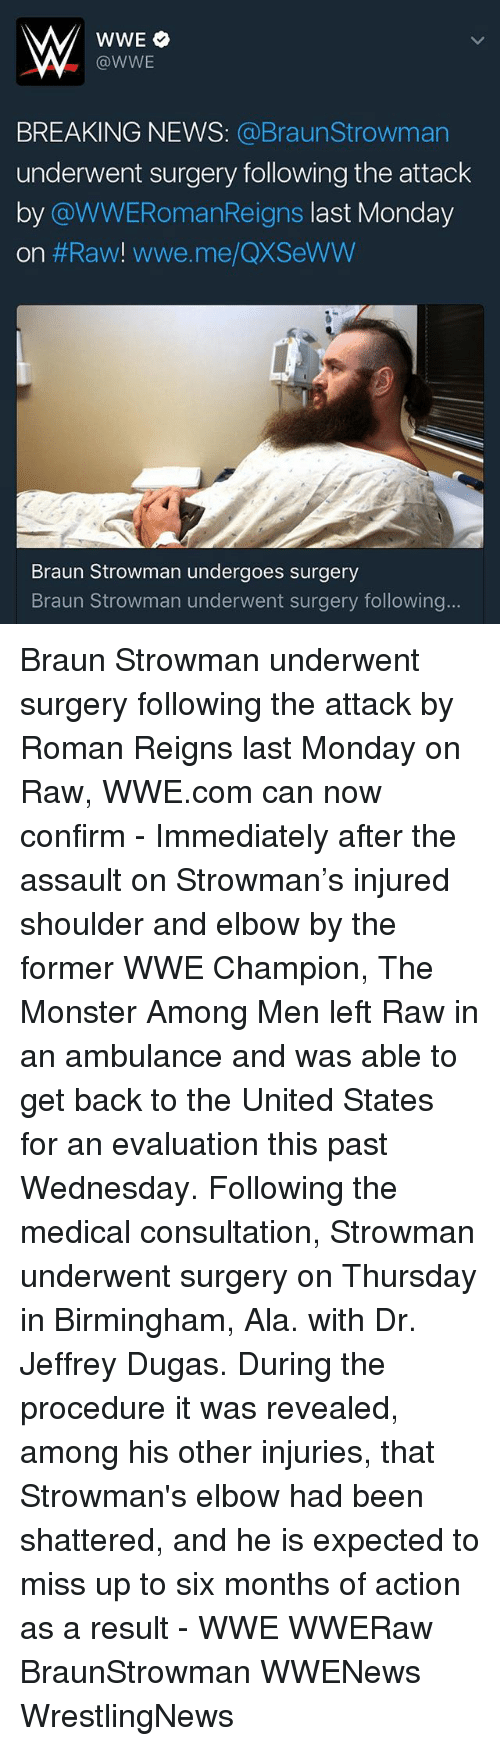 raw wwe: WWE  @WWE  BREAKING NEWS  @Braun Strowman  underwent surgery following the attack  by  @WWERomanReigns last Monday  On  #Raw! wwe me QXSeWW  Braun Strowman undergoes surgery  Braun Strowman underwent surgery following Braun Strowman underwent surgery following the attack by Roman Reigns last Monday on Raw, WWE.com can now confirm - Immediately after the assault on Strowman's injured shoulder and elbow by the former WWE Champion, The Monster Among Men left Raw in an ambulance and was able to get back to the United States for an evaluation this past Wednesday. Following the medical consultation, Strowman underwent surgery on Thursday in Birmingham, Ala. with Dr. Jeffrey Dugas. During the procedure it was revealed, among his other injuries, that Strowman's elbow had been shattered, and he is expected to miss up to six months of action as a result - WWE WWERaw BraunStrowman WWENews WrestlingNews